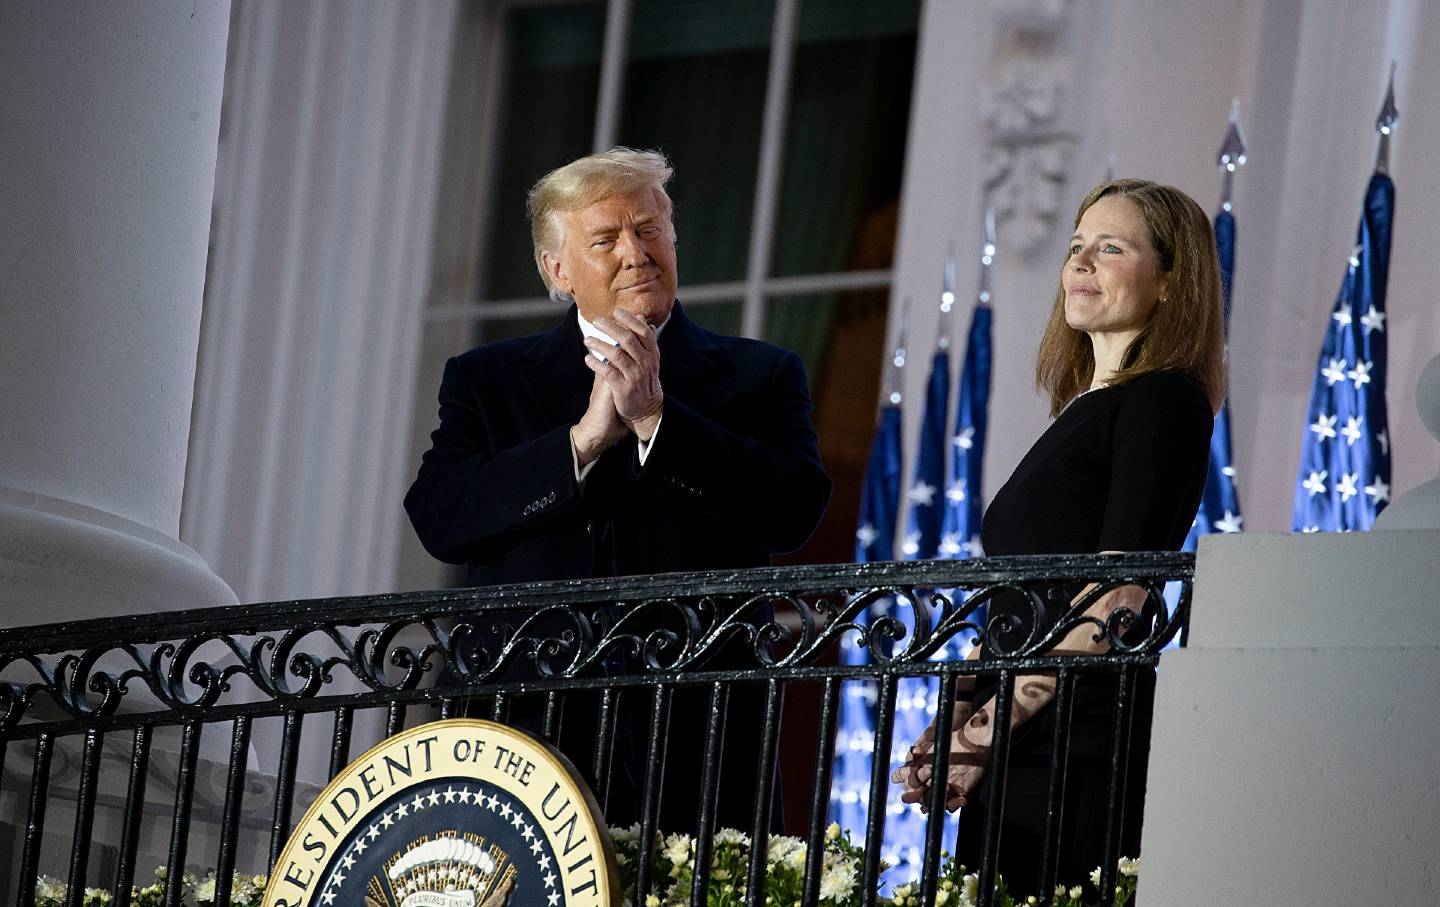 Trump and Amy Coney Barrett stand next to each other behind a gate.